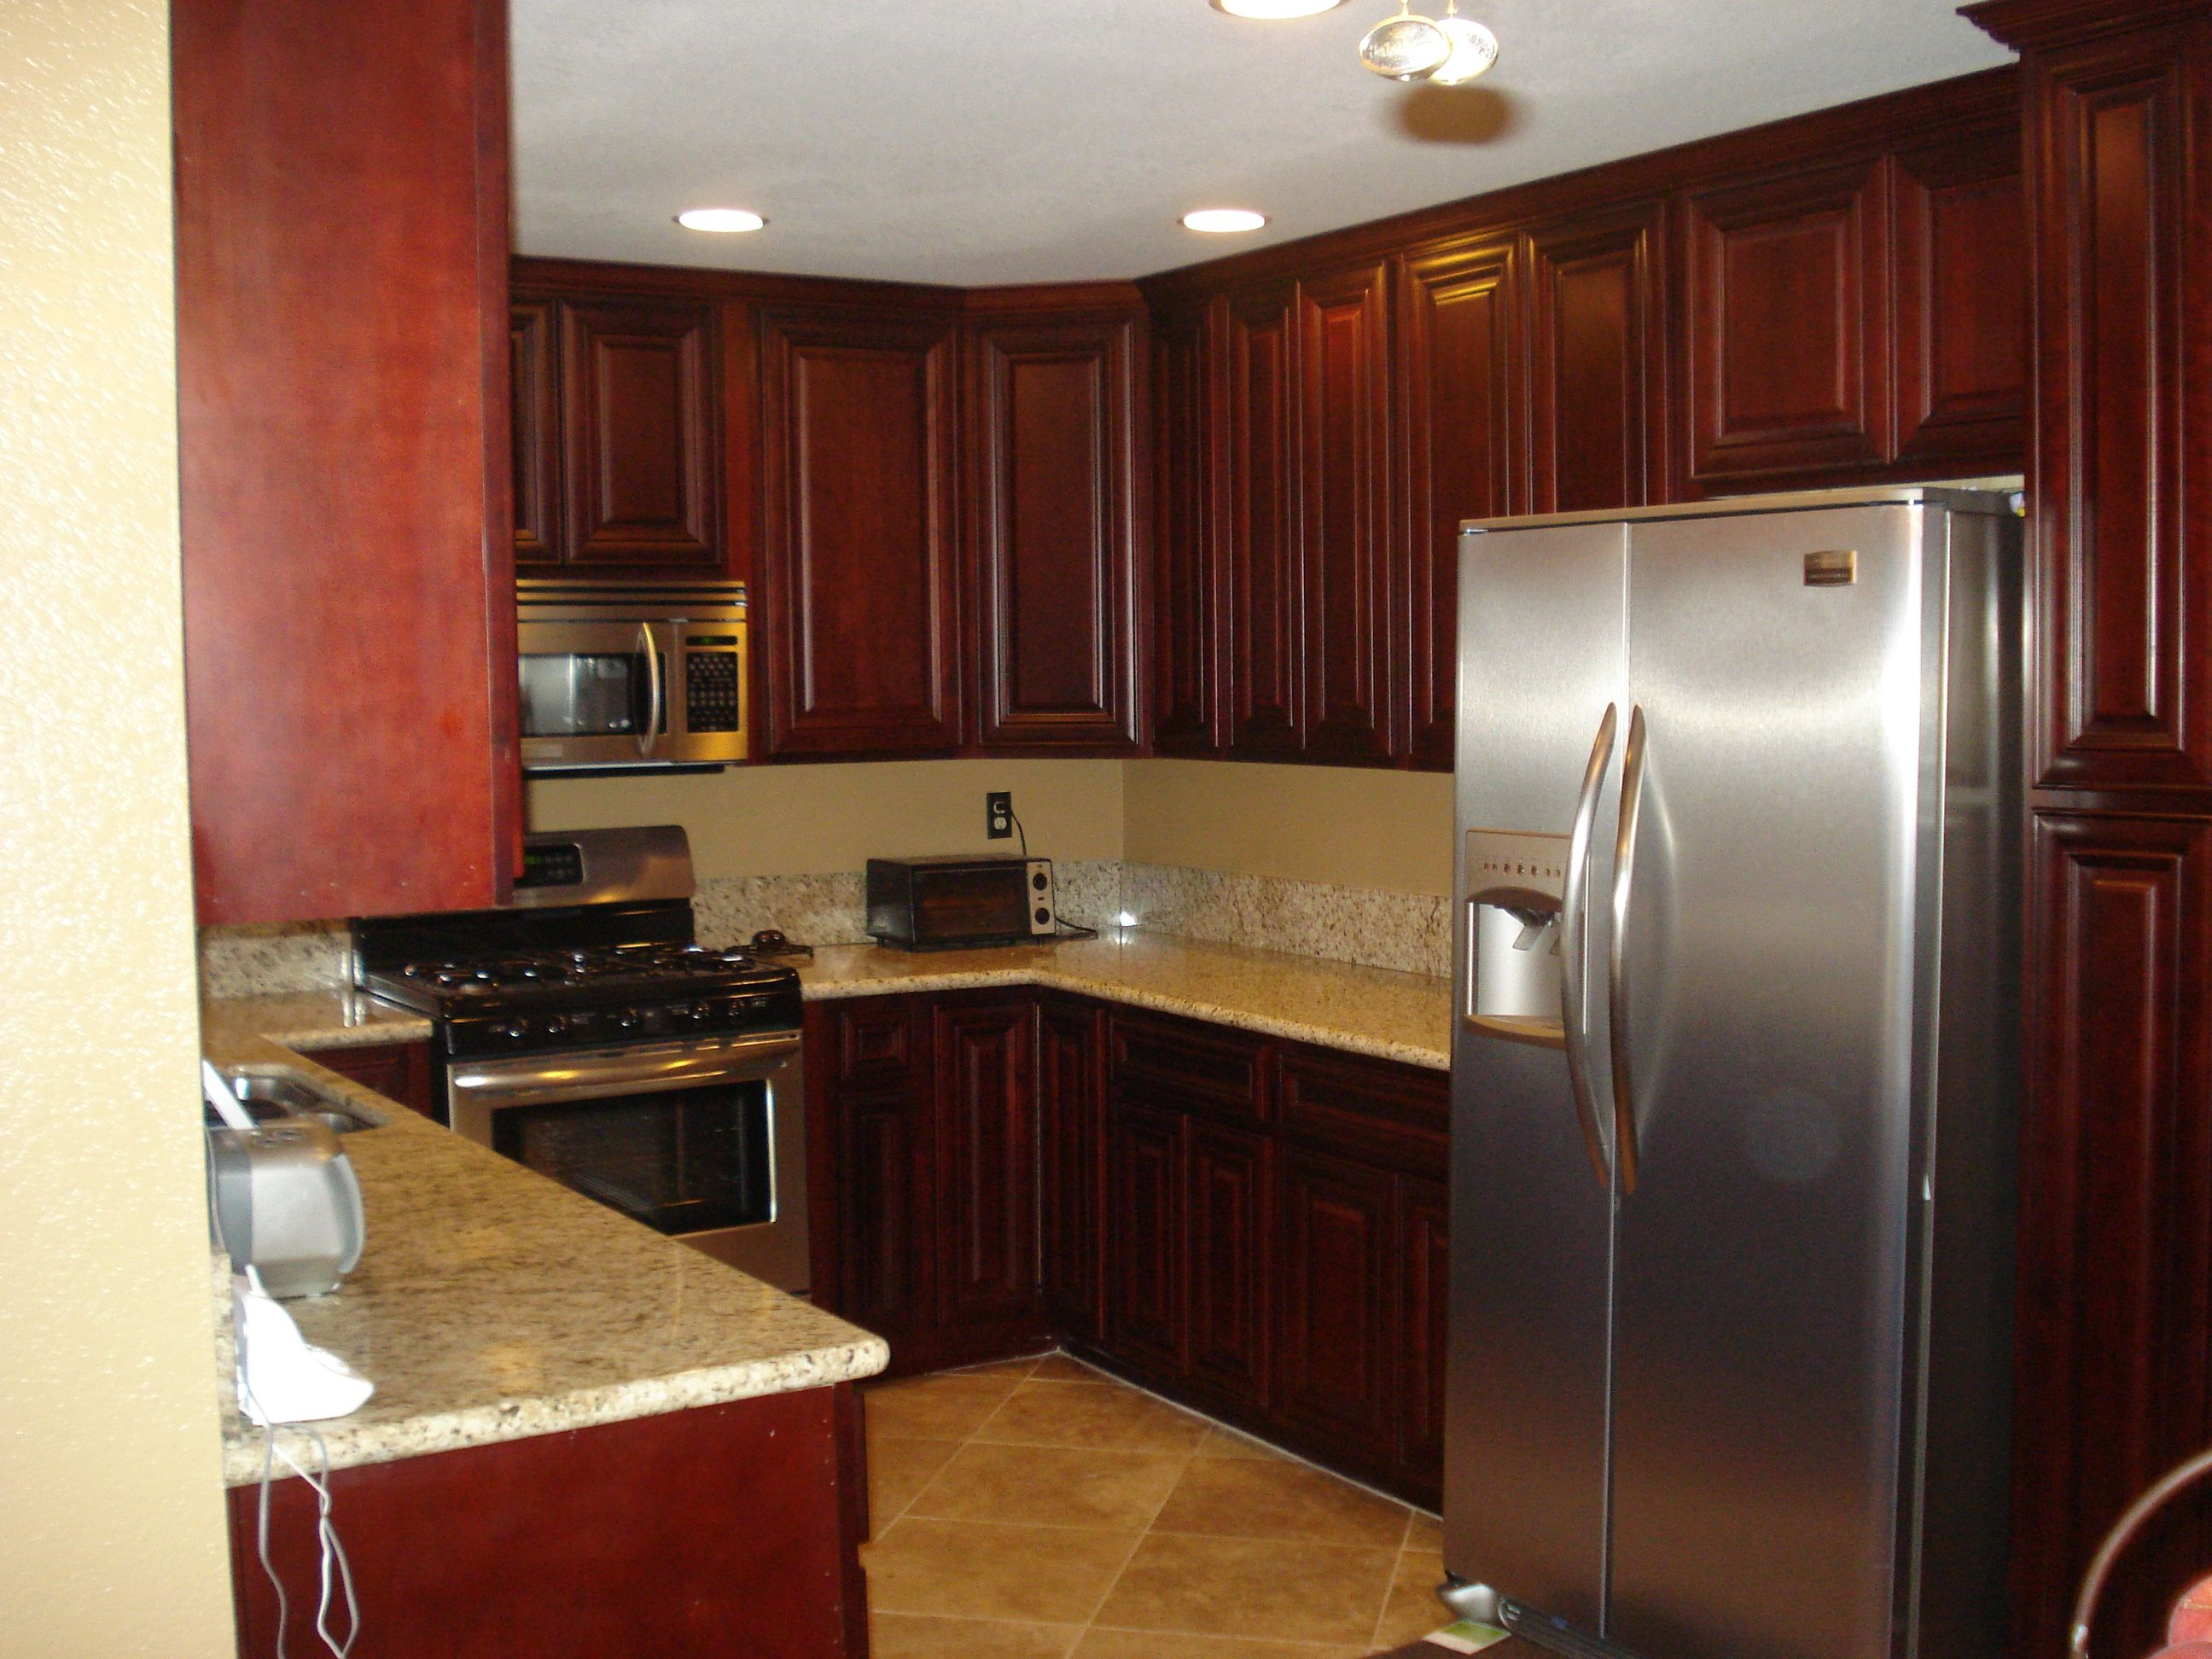 Magnificent White Marble Countertops In U Shaped Kitchen Cherry Red Veneer  Cabinets As Inspiring Guest Kitchen